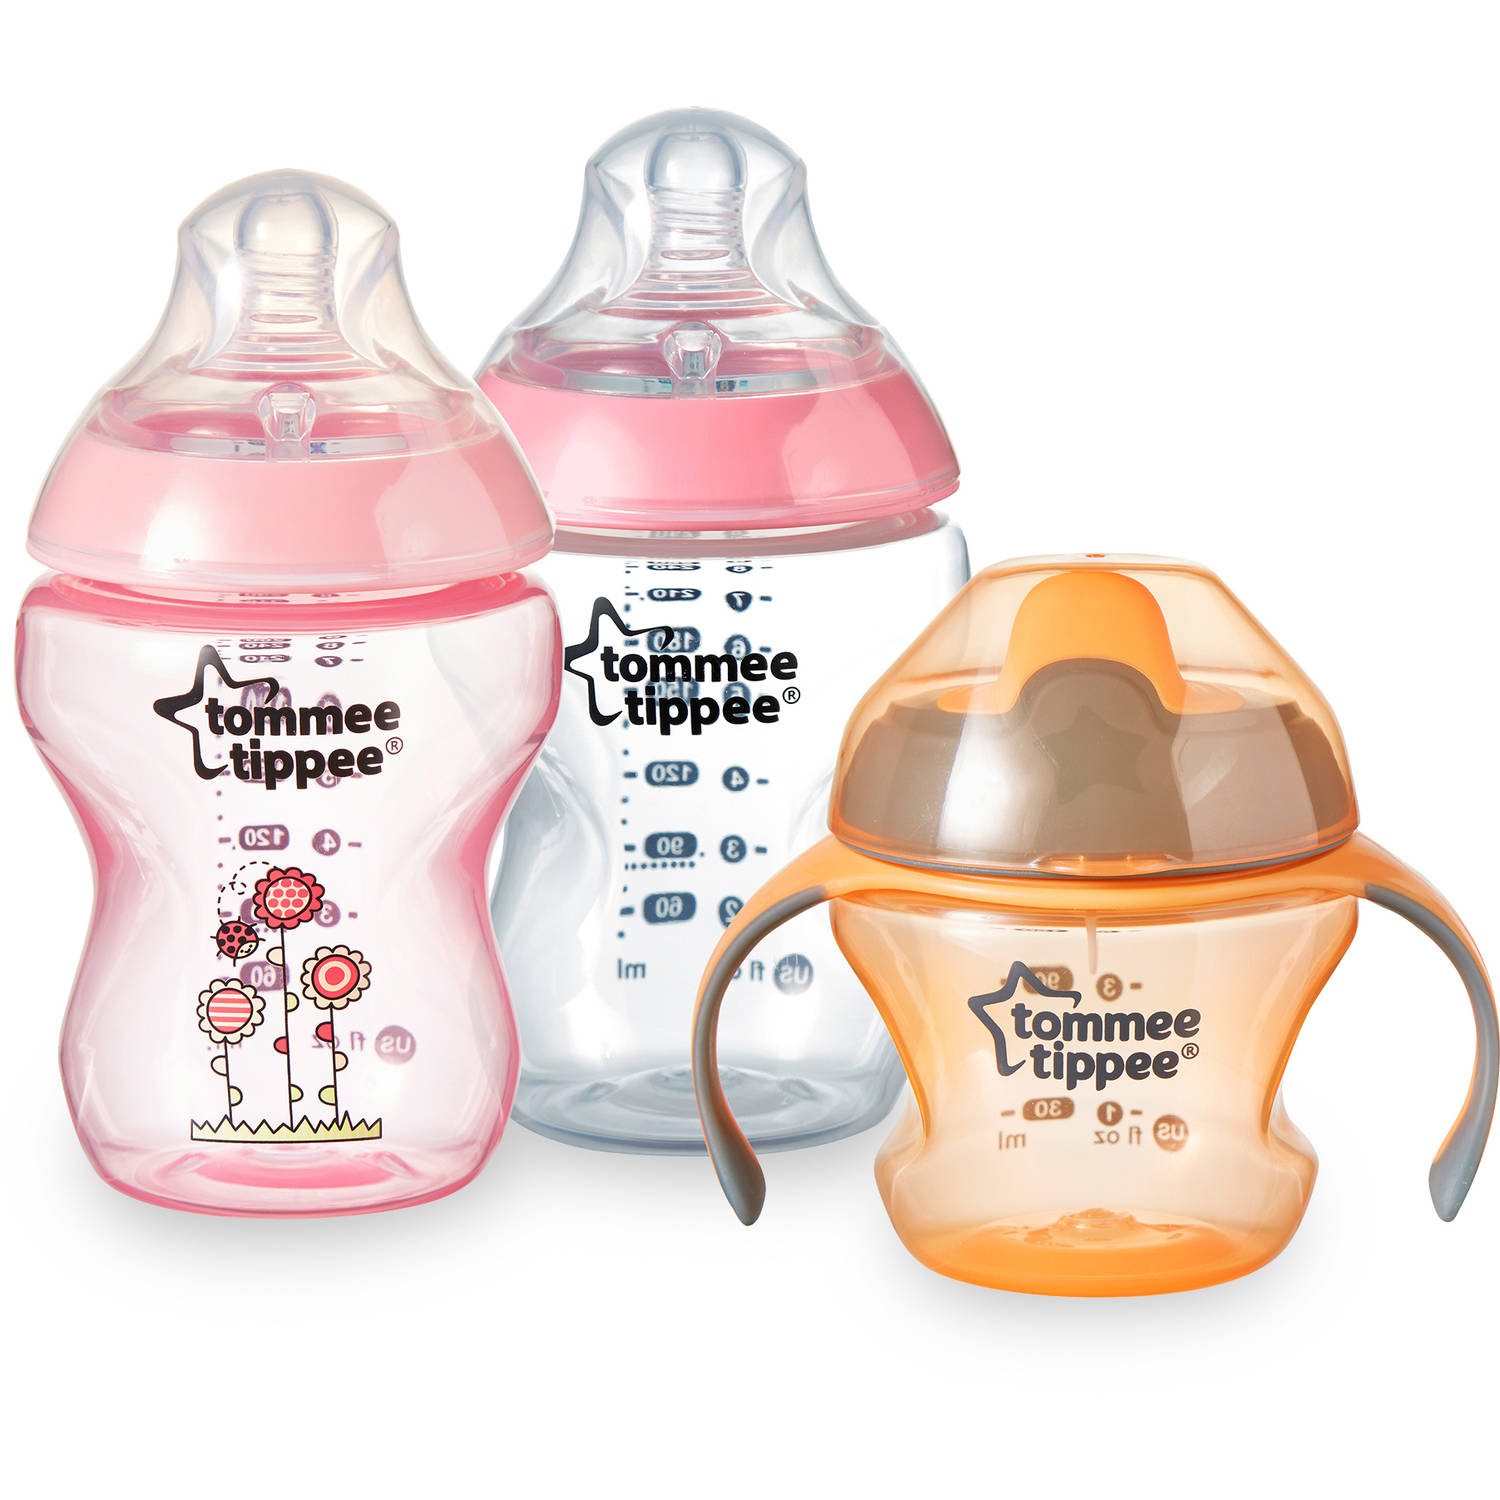 Tommee Tippee Tip it Up Bottle and Training Cup, BPA-Free, 9 oz Bottle, 5 oz Cup, Girl